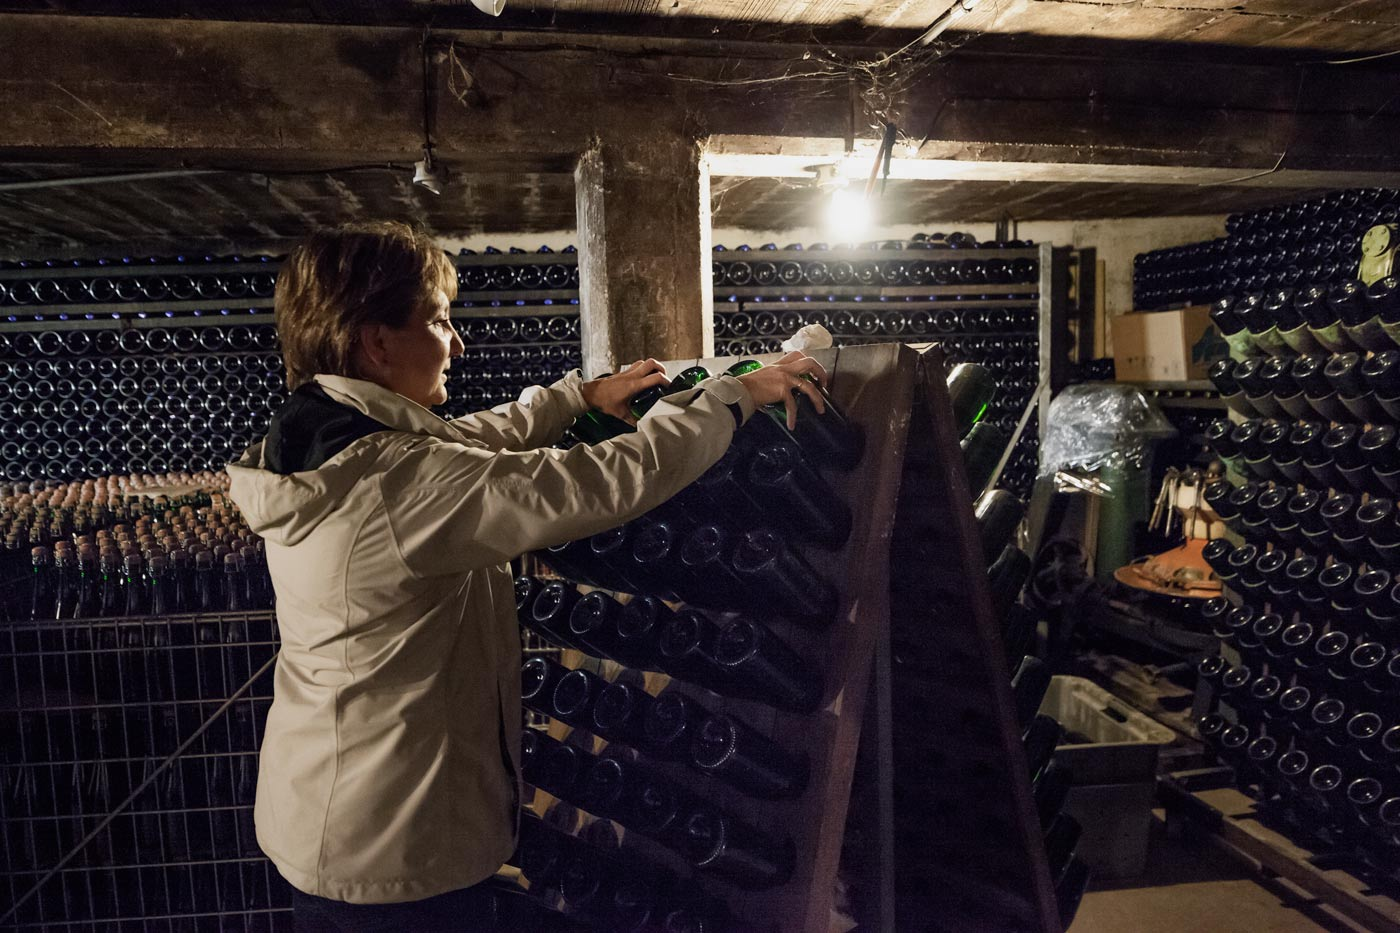 A vine maker at work in the french Champagne region